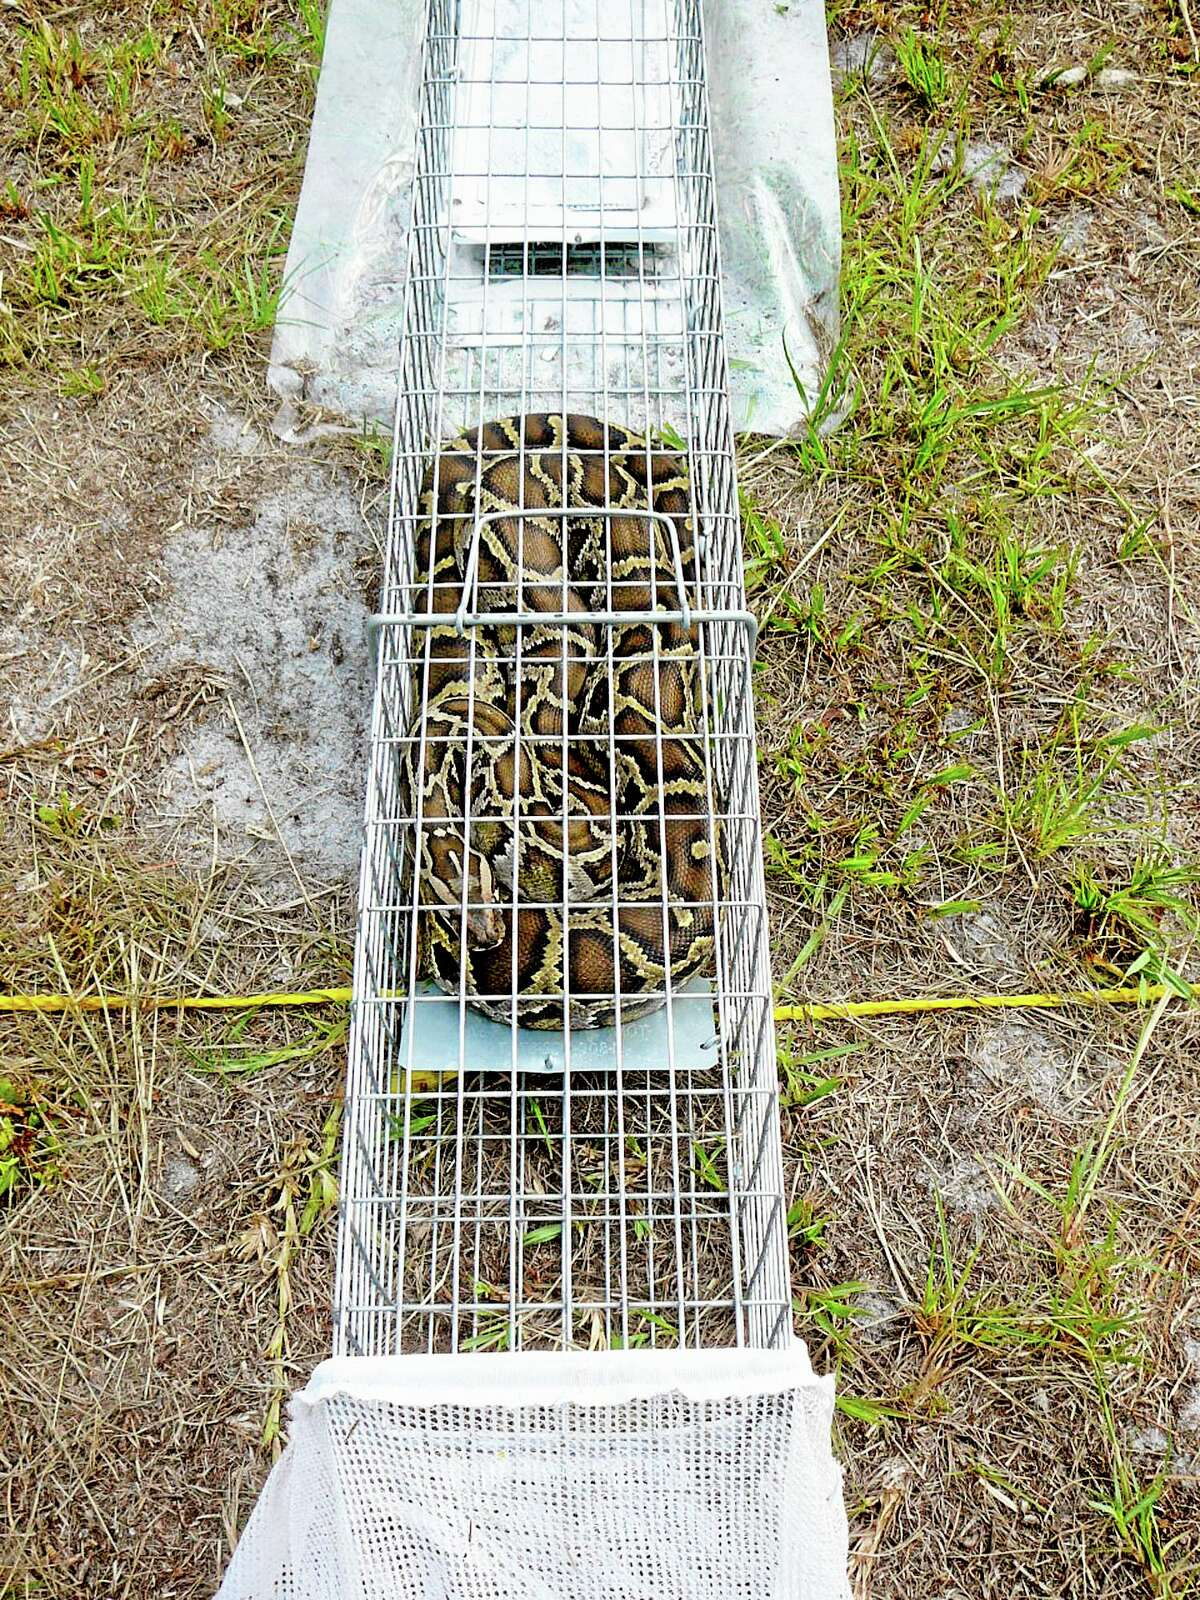 In this photo taken from a video on June 8, 20011 and made available by the USDA Wildlife Services shows a python curled up in a test trap at their research facility in Gainesville, Fla. The trap patented by the USDA will test if pythons can be lured into traps. Pythons are invasive species that researchers believe are decimating populations of native mammals, especially in the Florida Everglades. (AP Photo/USDA Wildlife Services, HO)